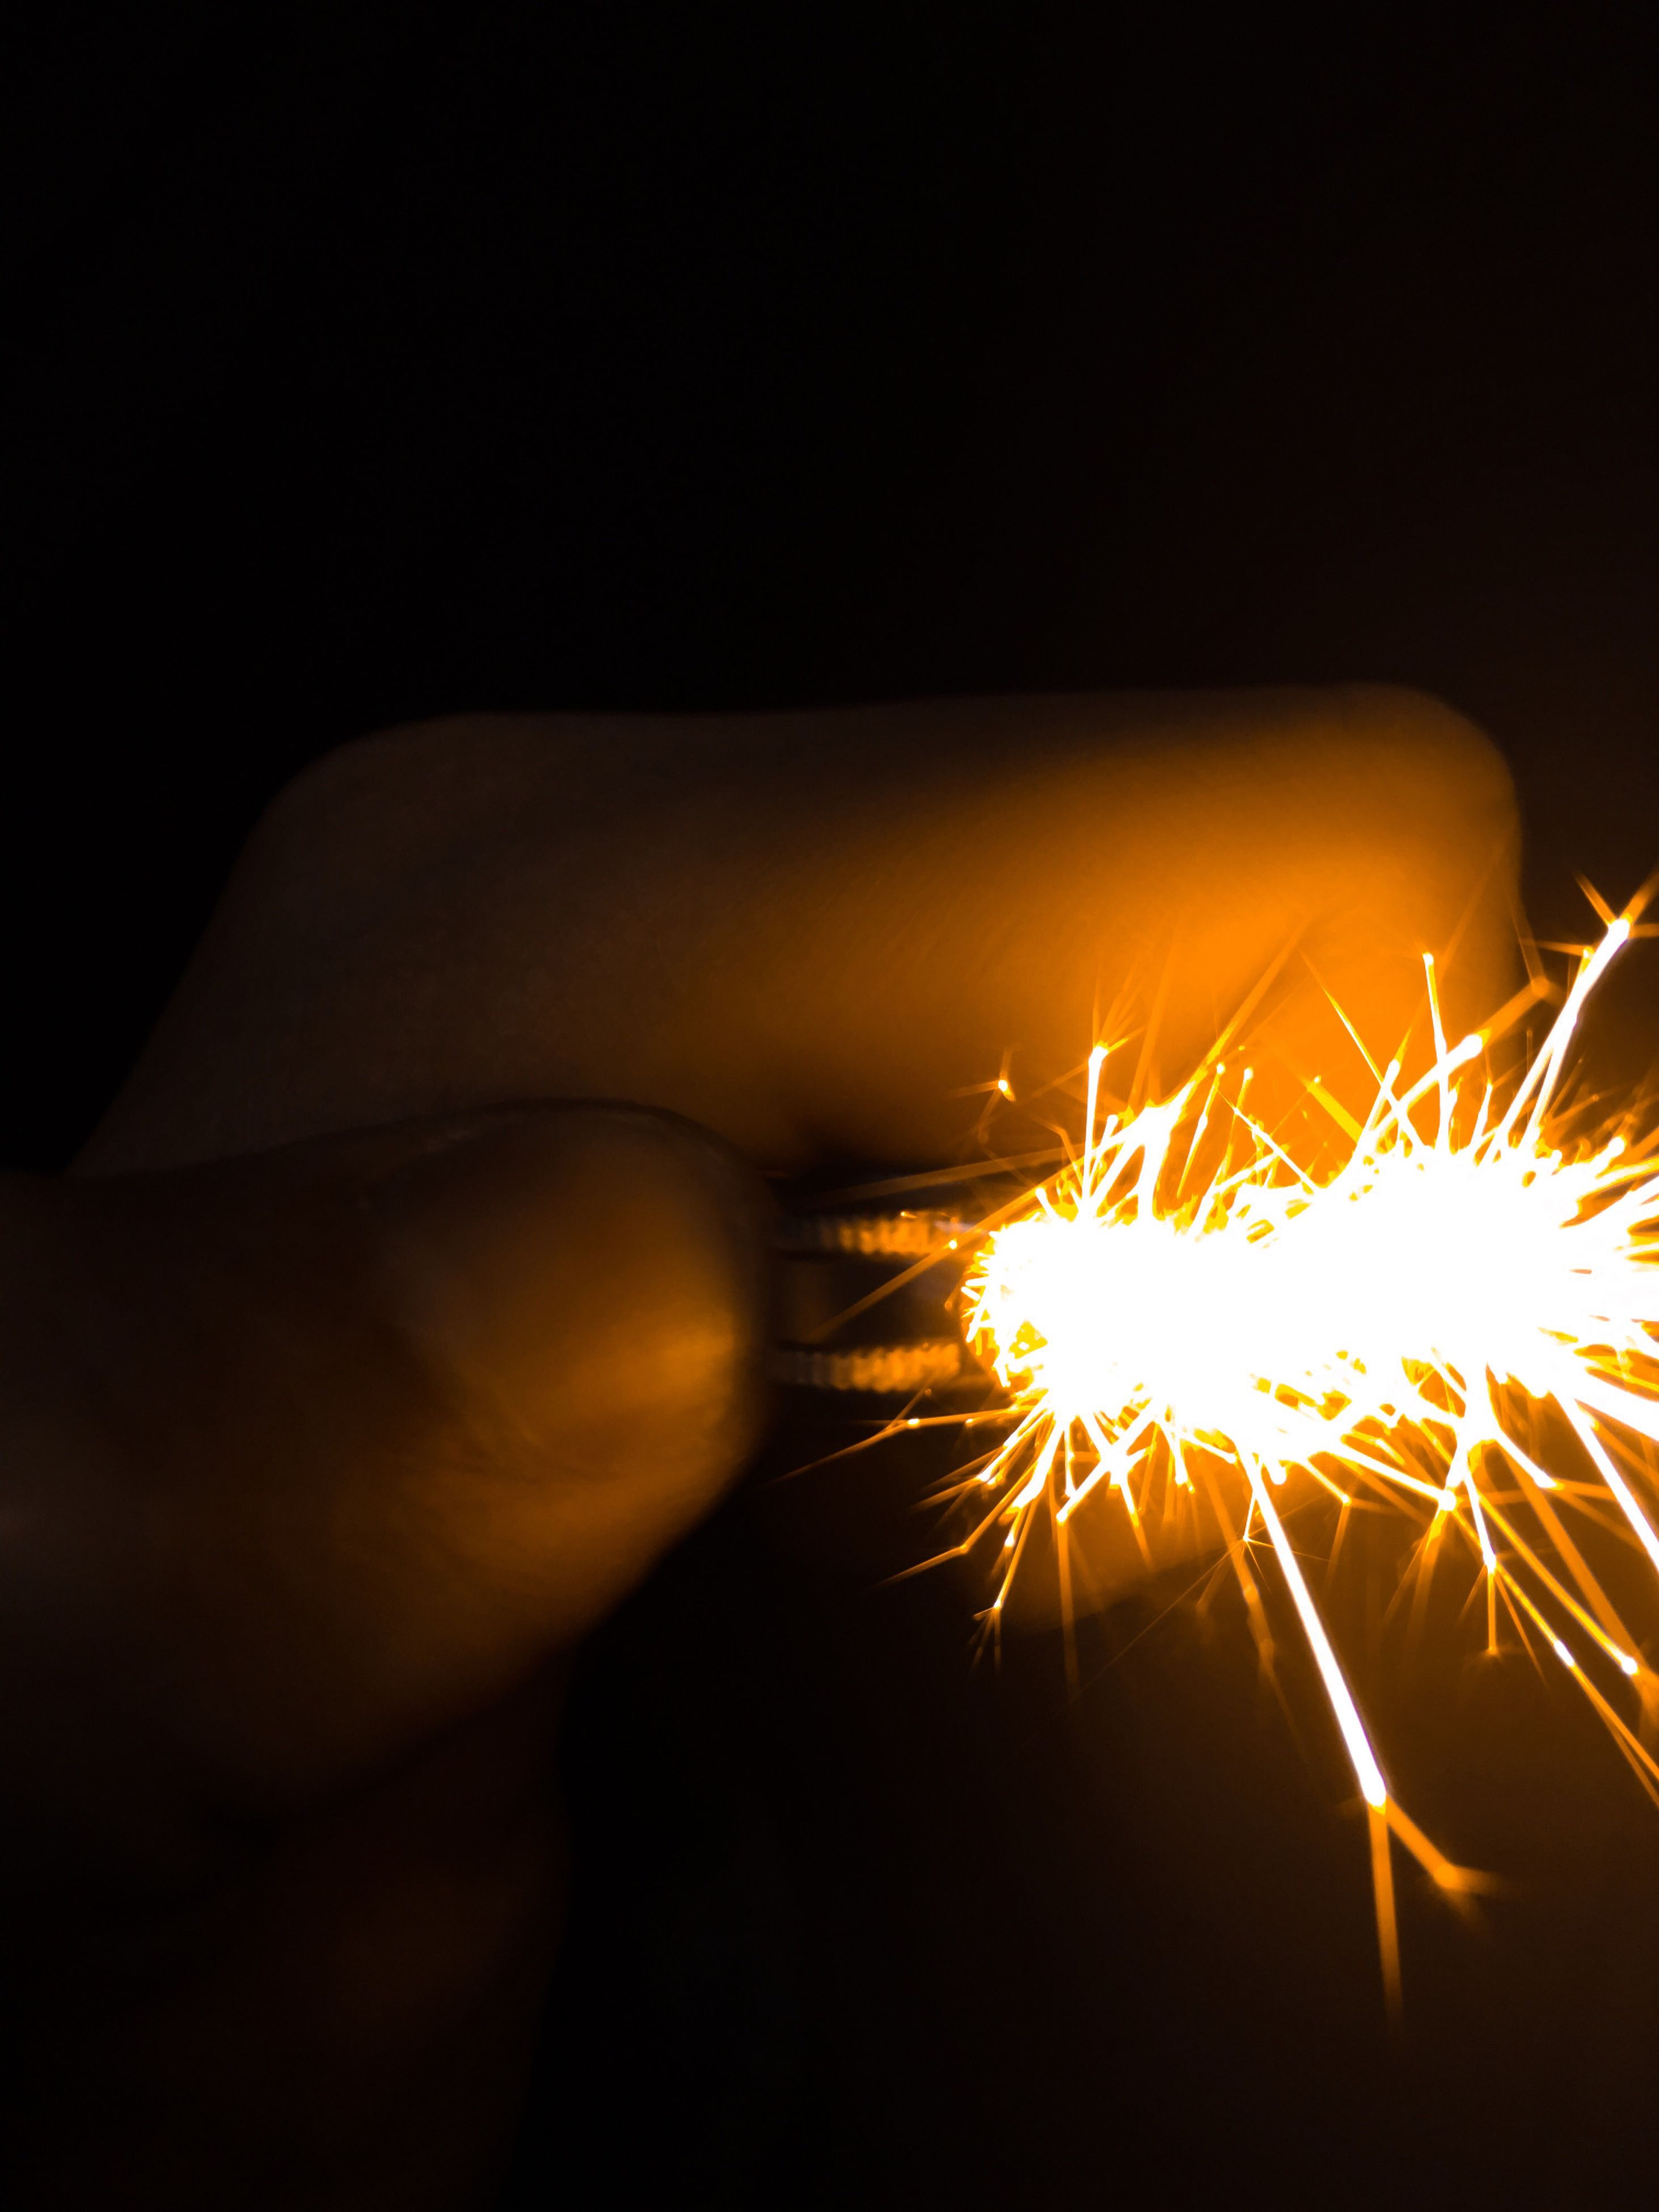 burning, illuminated, fire - natural phenomenon, flame, glowing, night, heat - temperature, lit, black background, studio shot, close-up, dark, copy space, long exposure, motion, fire, sparks, light - natural phenomenon, one person, part of